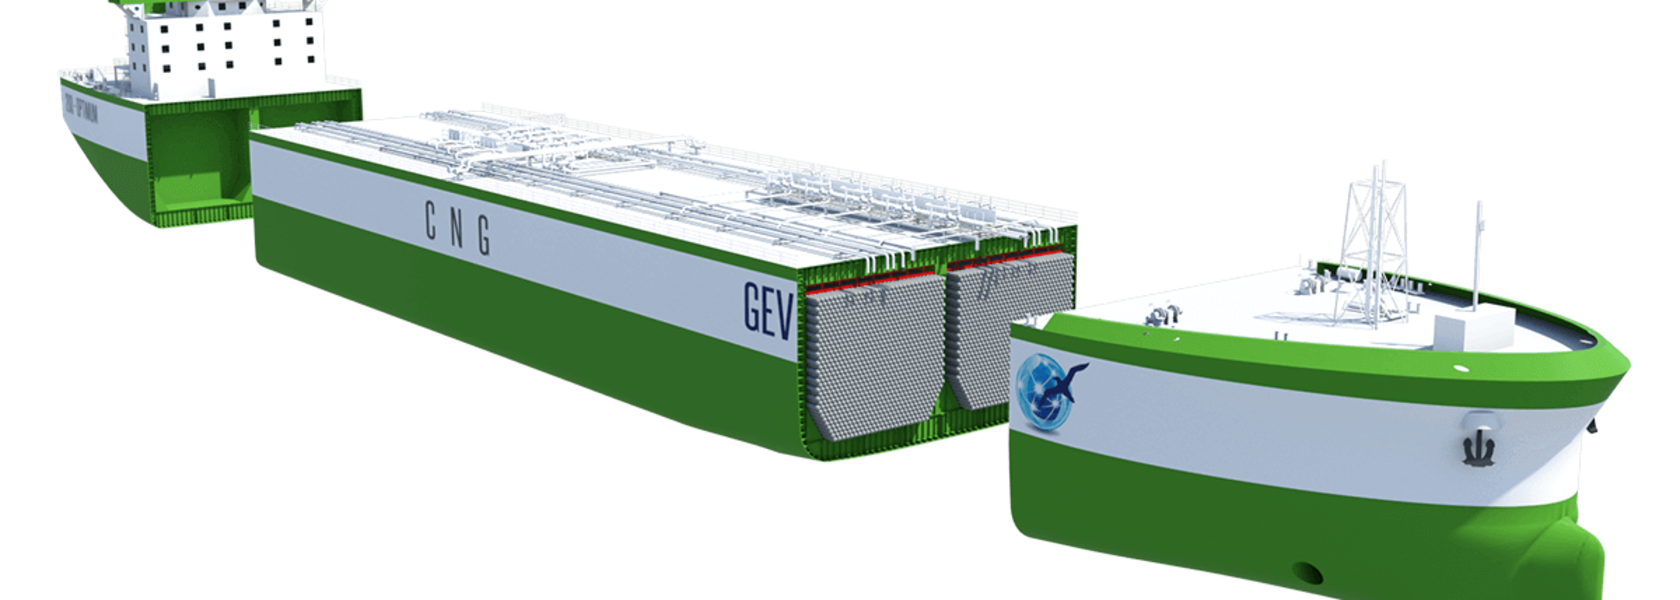 GEV extends with Meridian, LNG nixes seventh extension